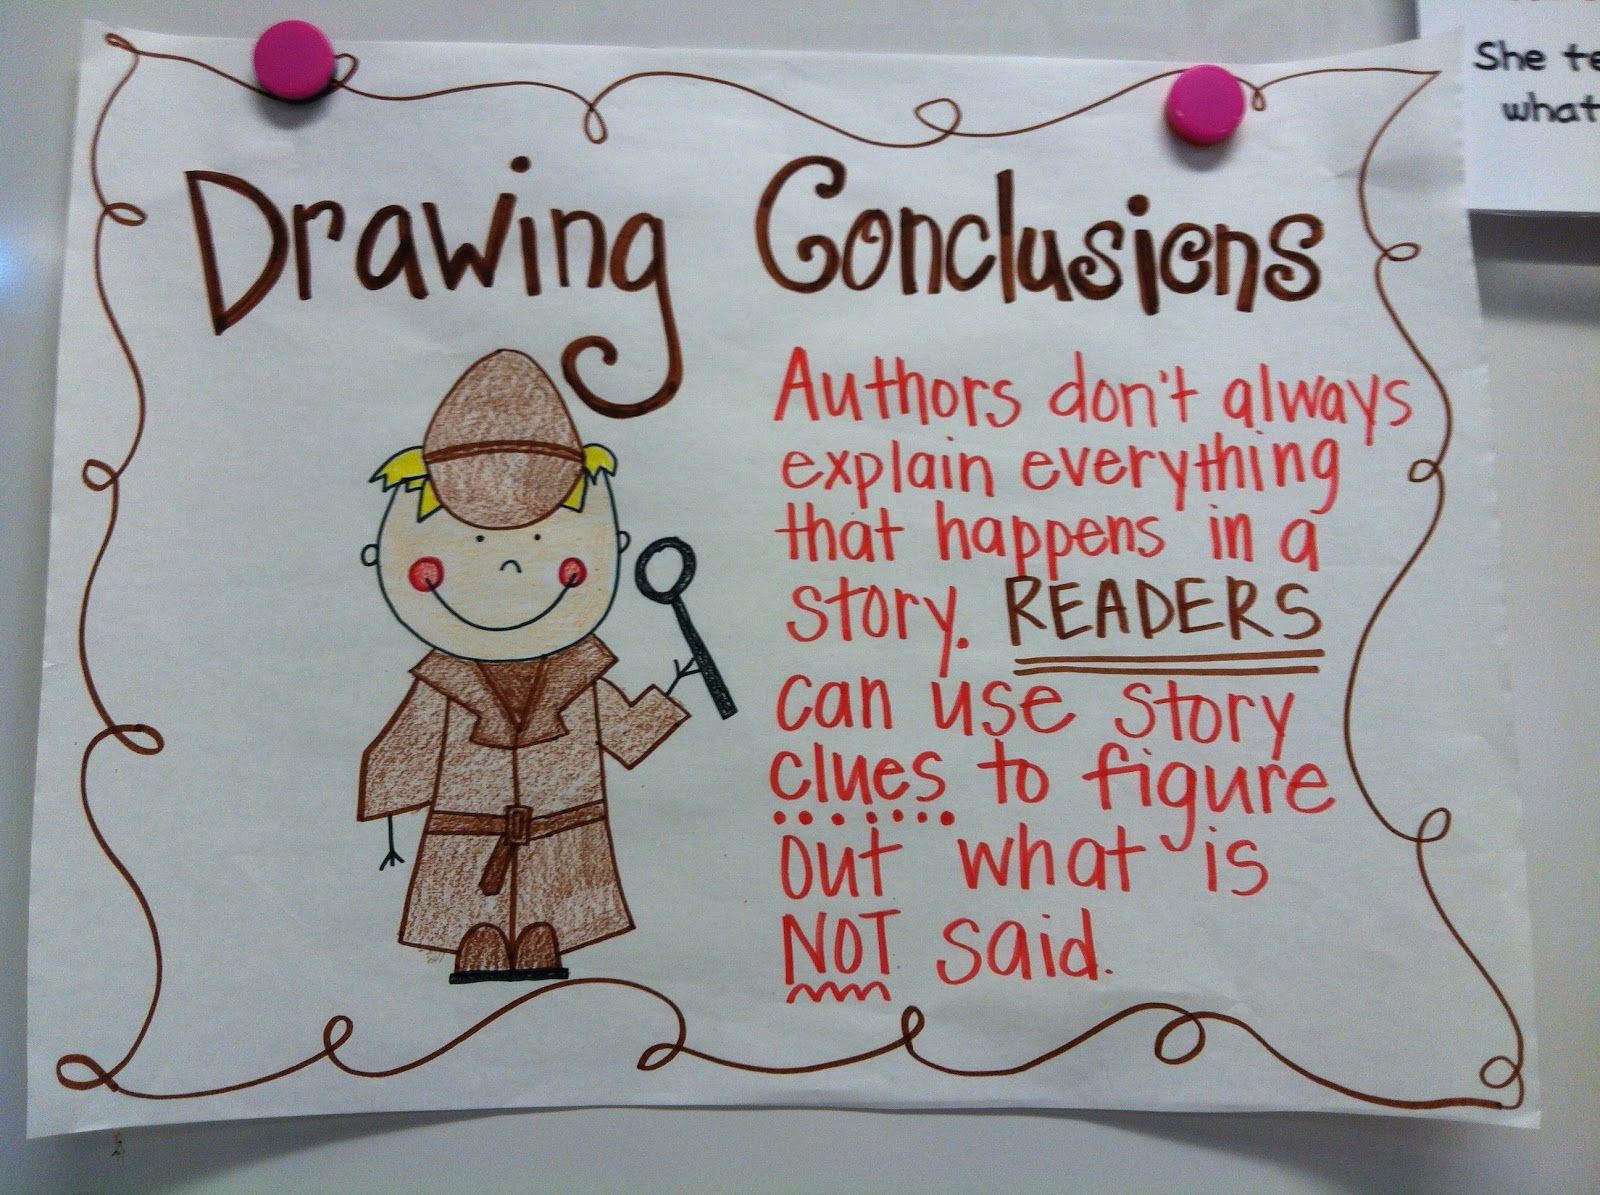 The Lemonade Stand Drawing Conclusions Drawing Conclusions Anchor Chart Drawing Conclusions Activity Drawing Conclusions [ 1195 x 1600 Pixel ]